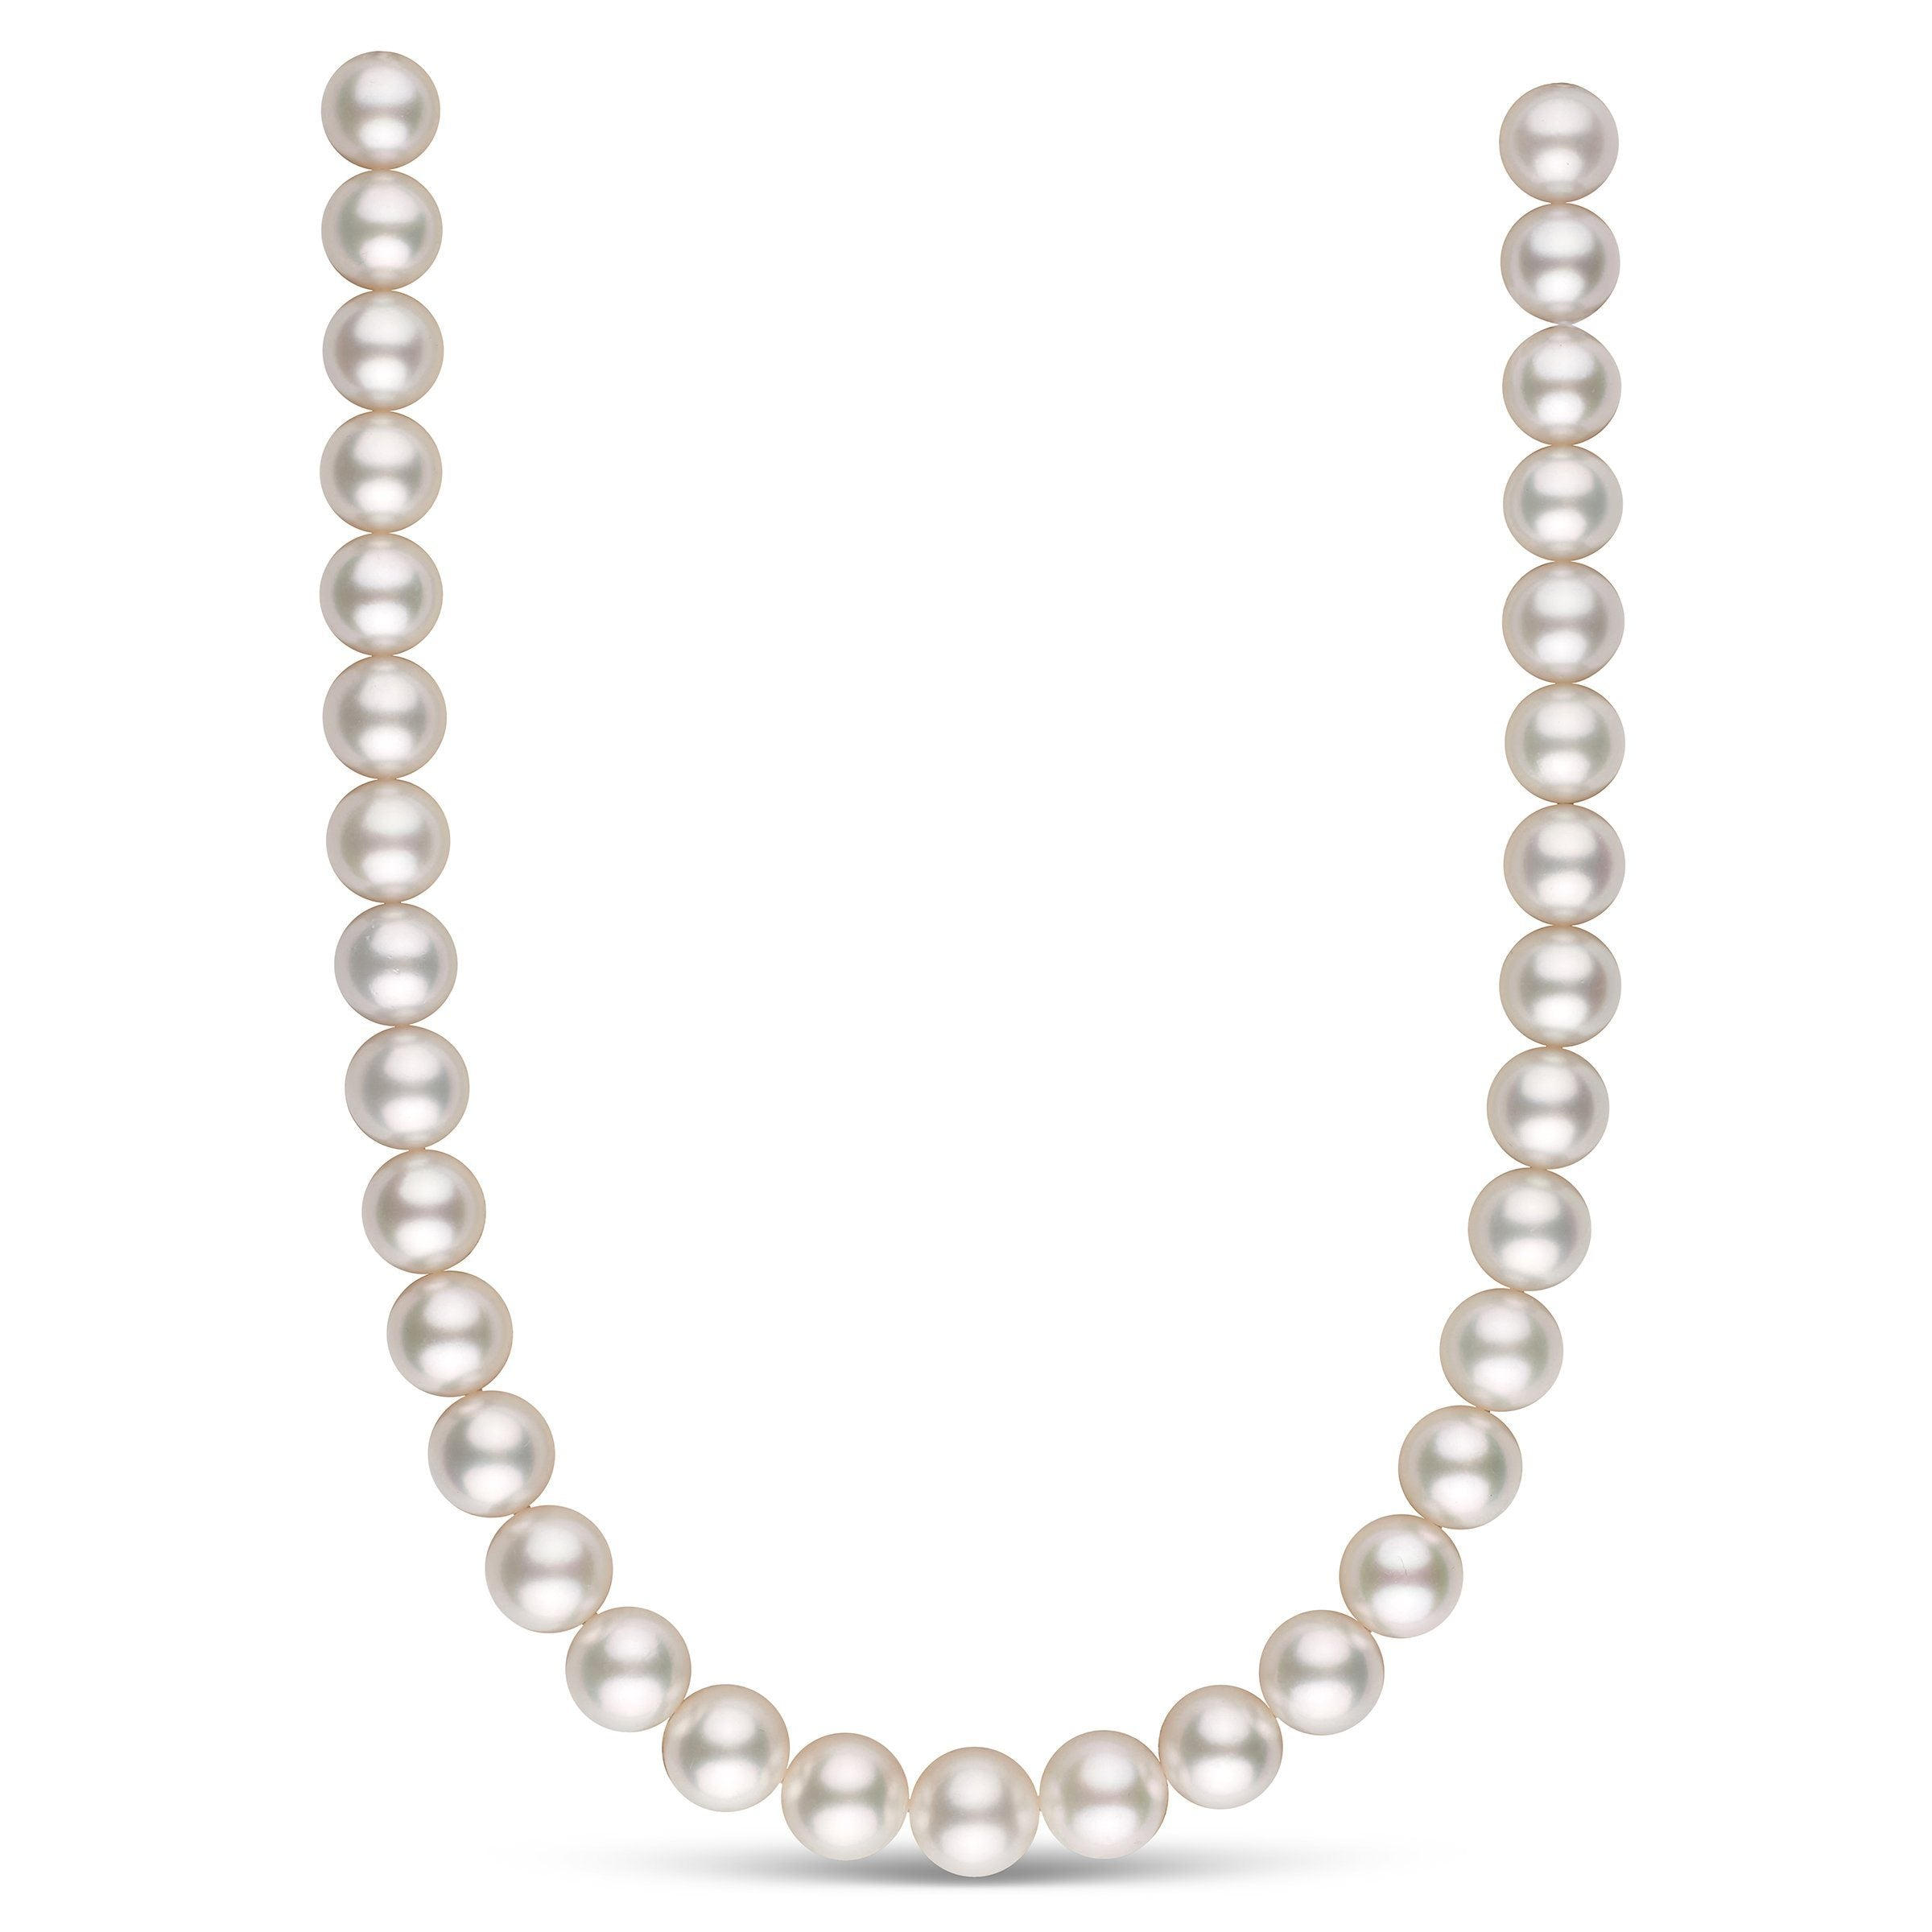 12.0-13.0 mm AAA White South Sea Round Pearl Necklace